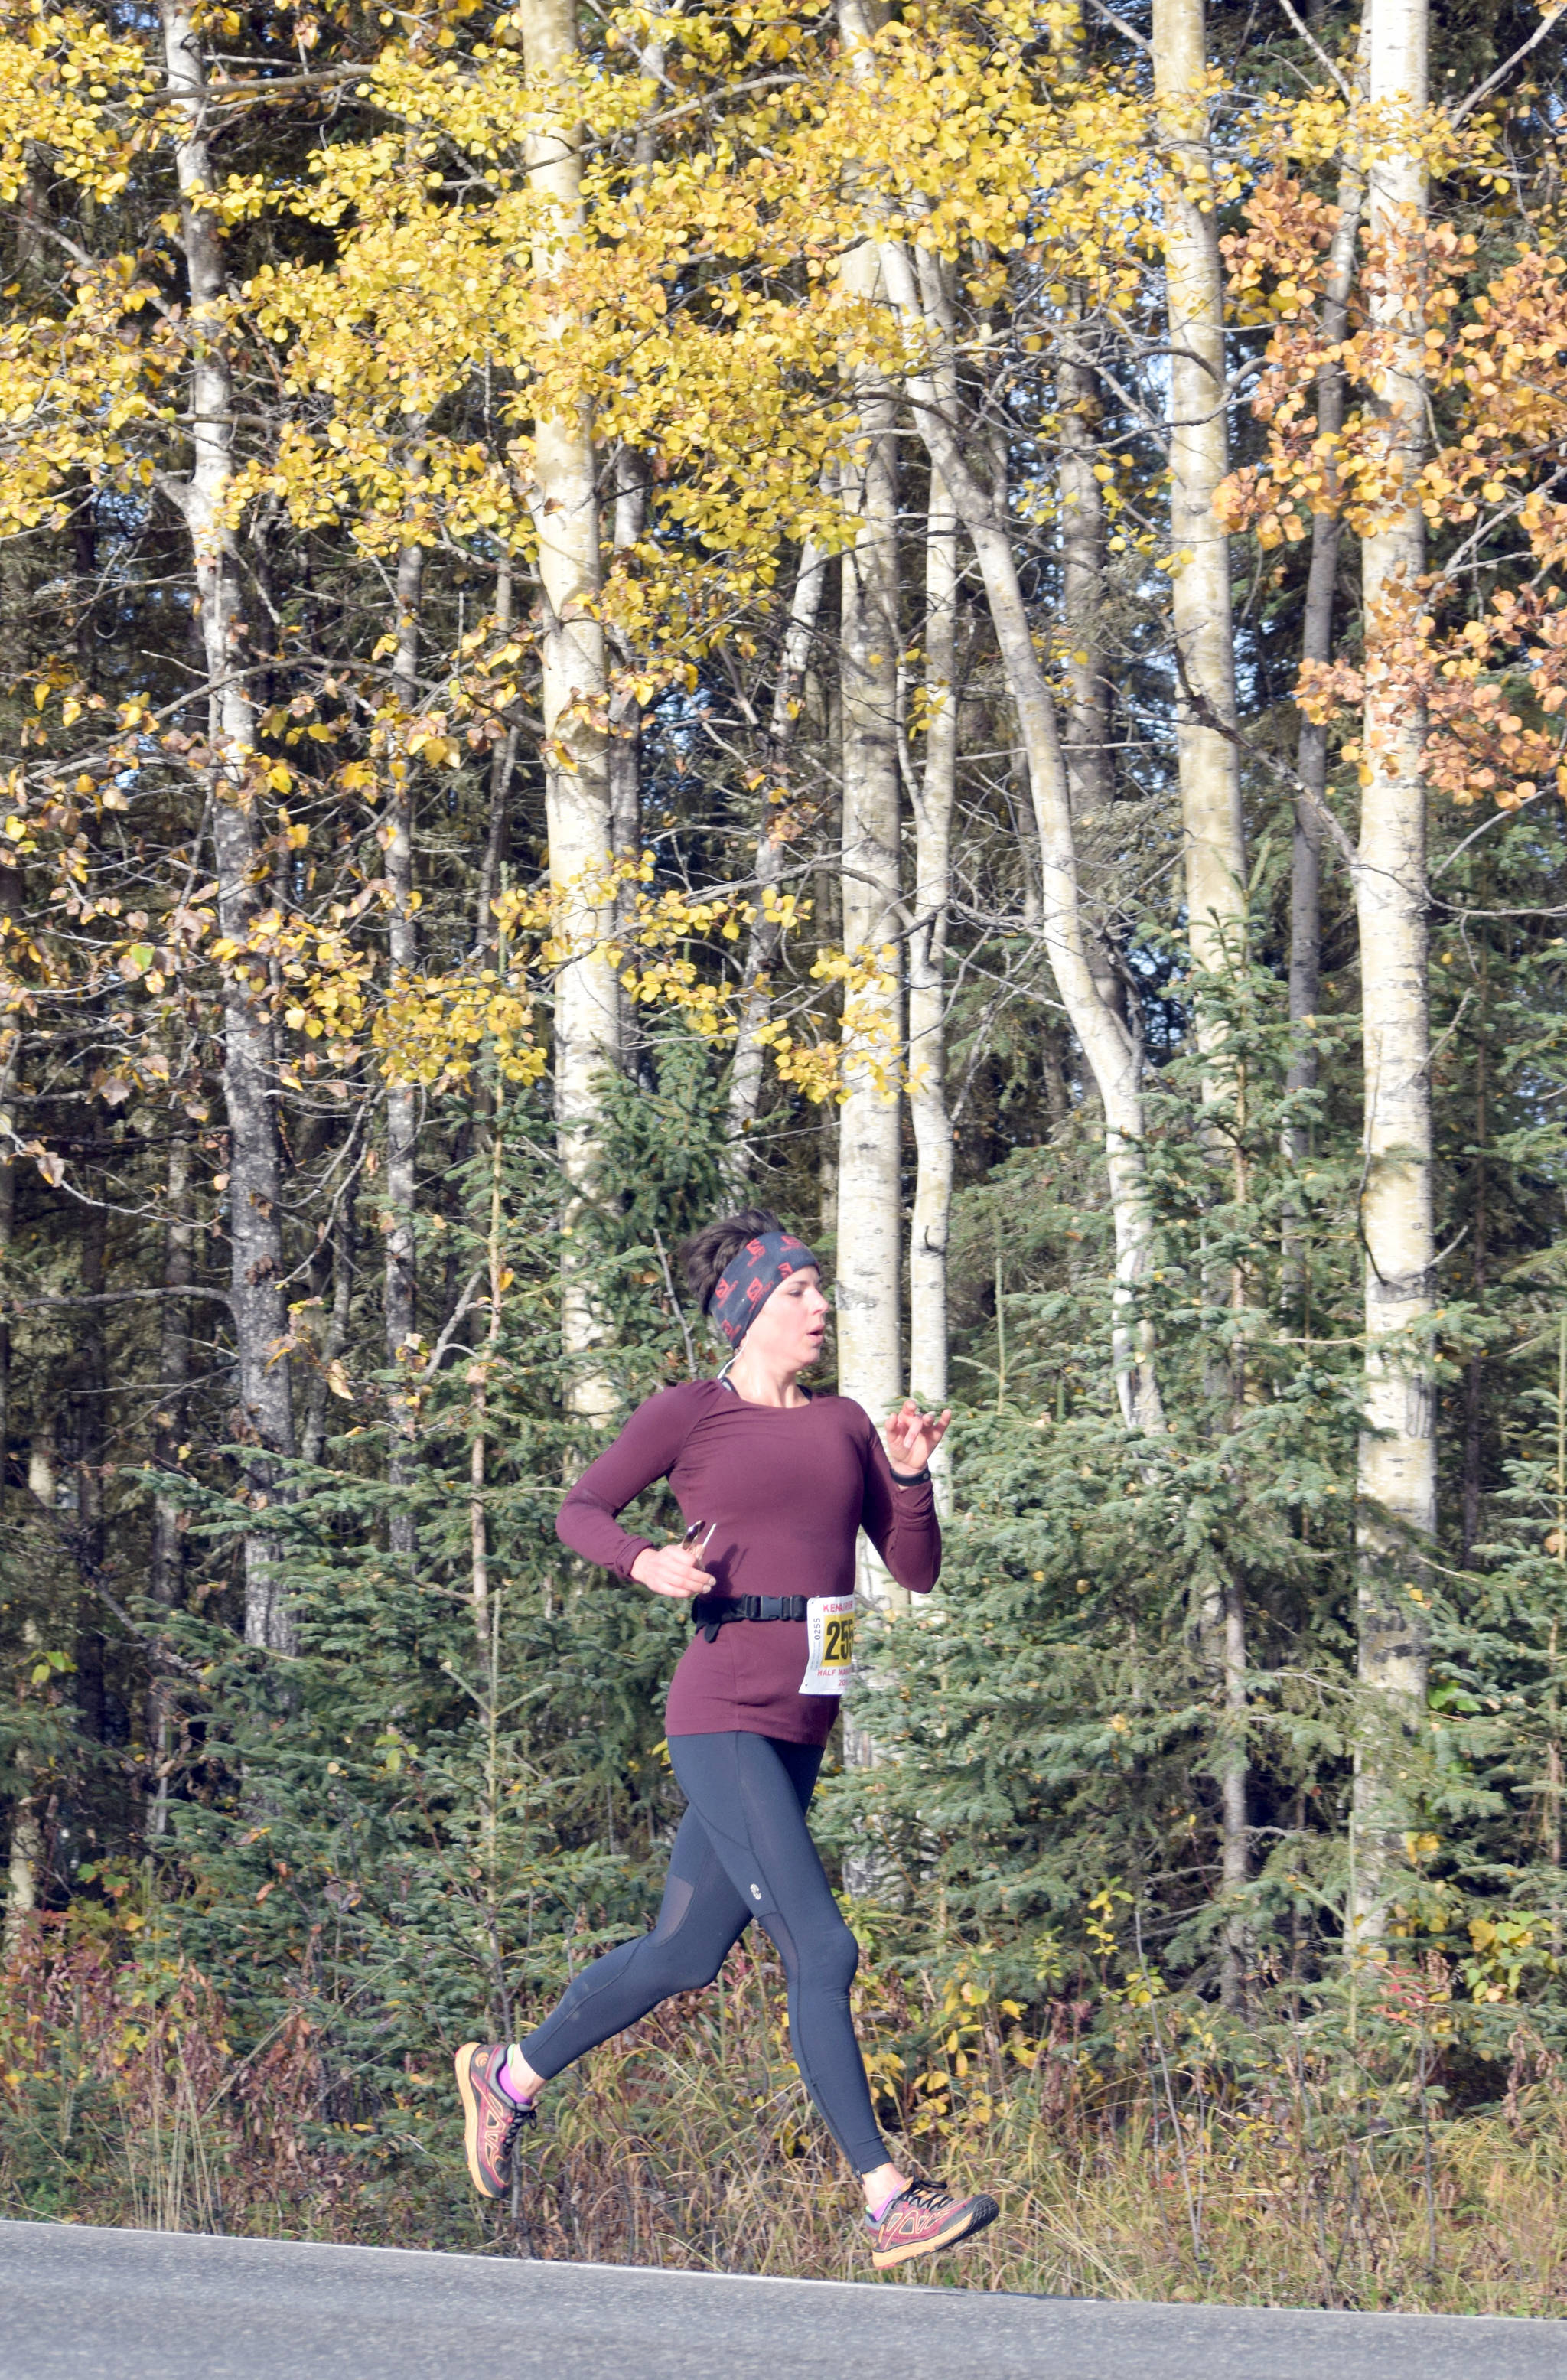 Eagle River's Victoria Oxetenko floats down Beaver Loop Road on the way to victory in the half marathon of the Kenai River Marathon on Sunday, Sept. 30, 2018. (Photo by Jeff Helminiak/Peninsula Clarion)